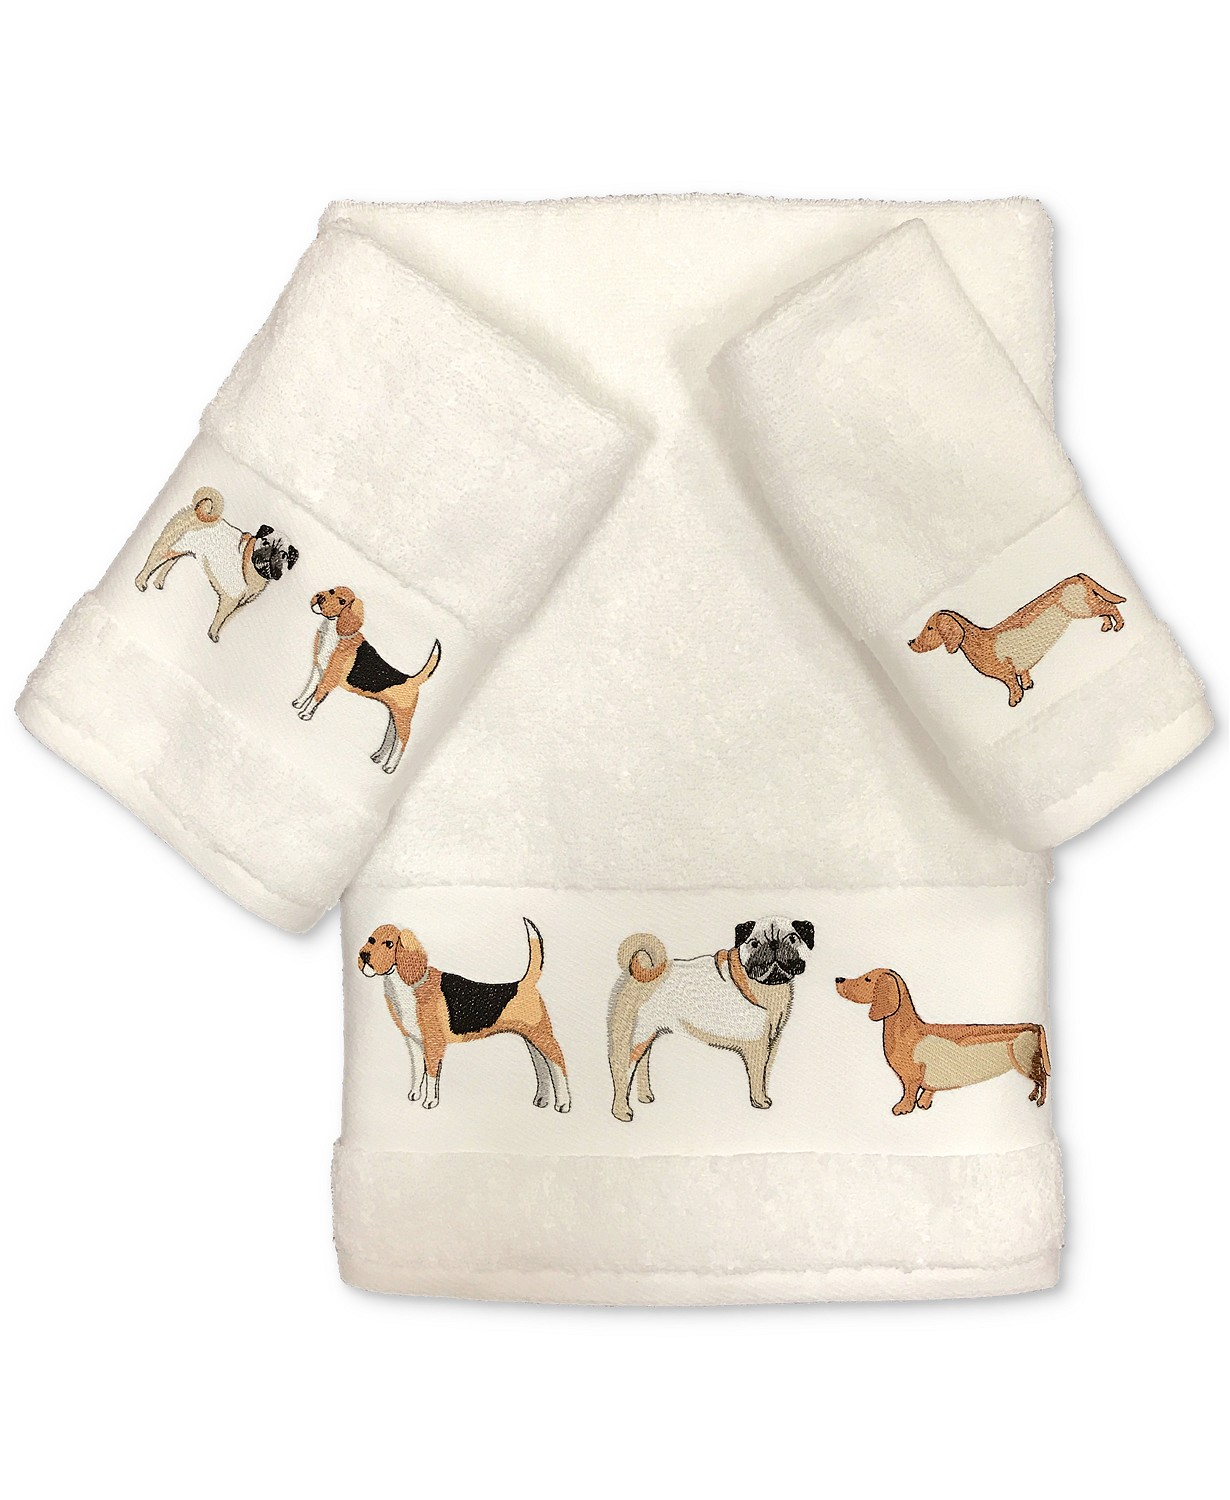 Avanti Dog Towel Set